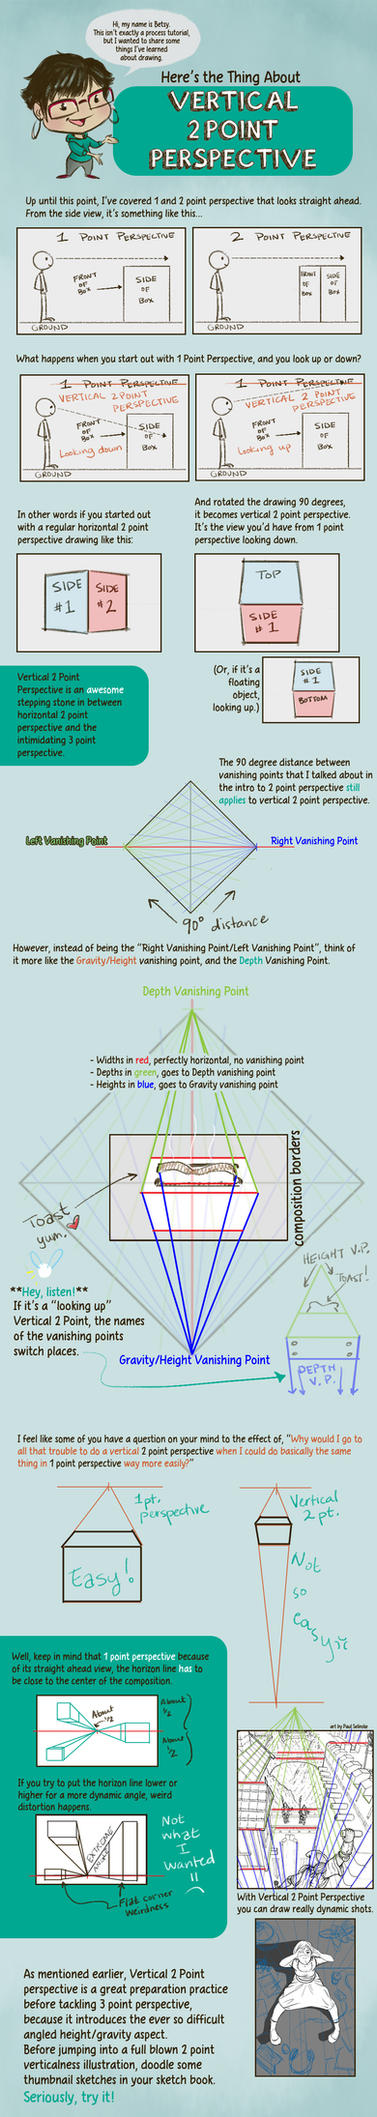 2 Point Vertical Perspective Intro by betsyillustration